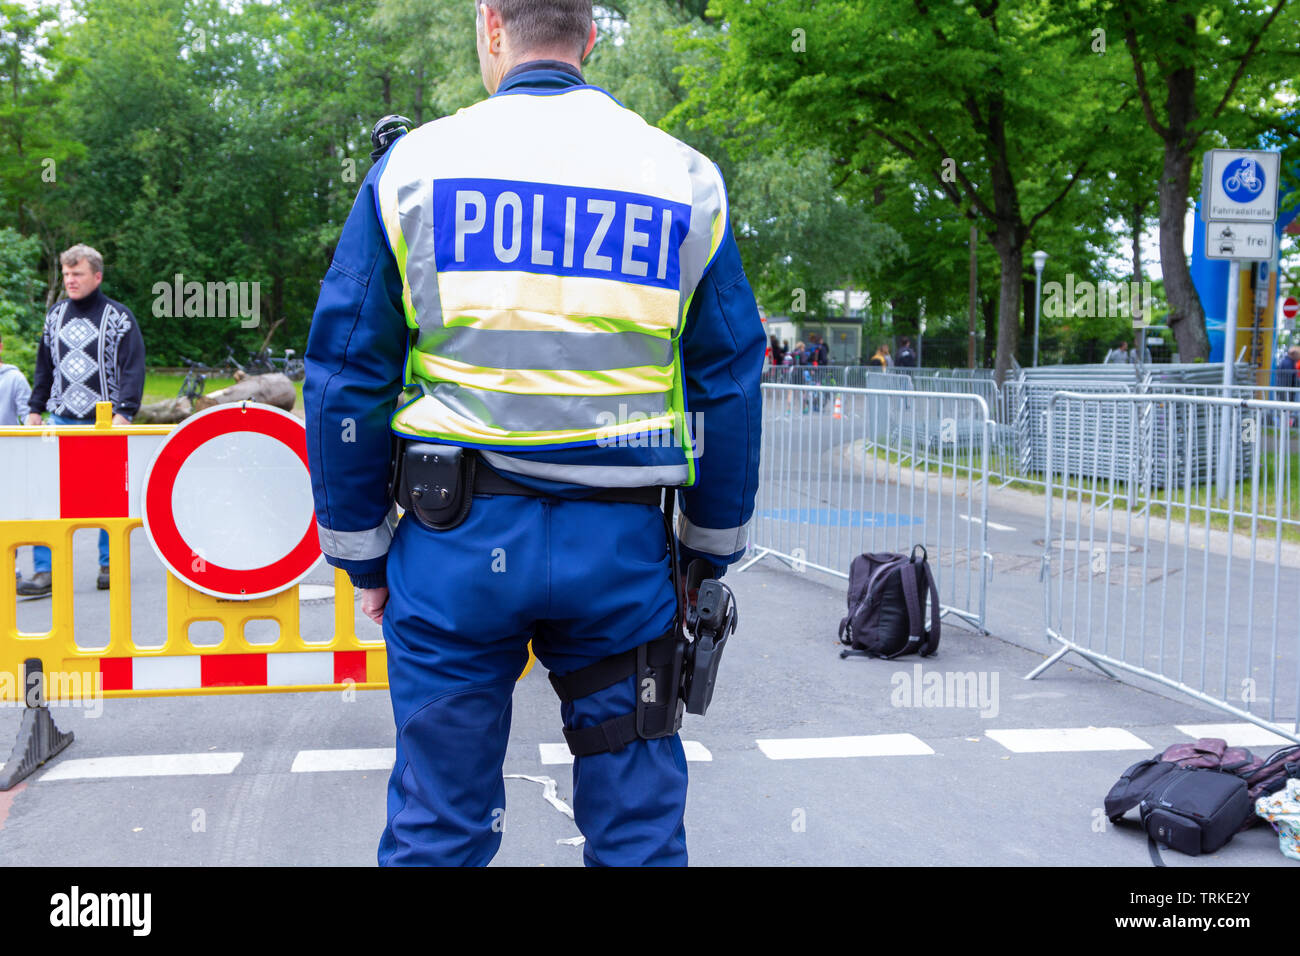 Police Lower Saxony Stock Photos & Police Lower Saxony Stock